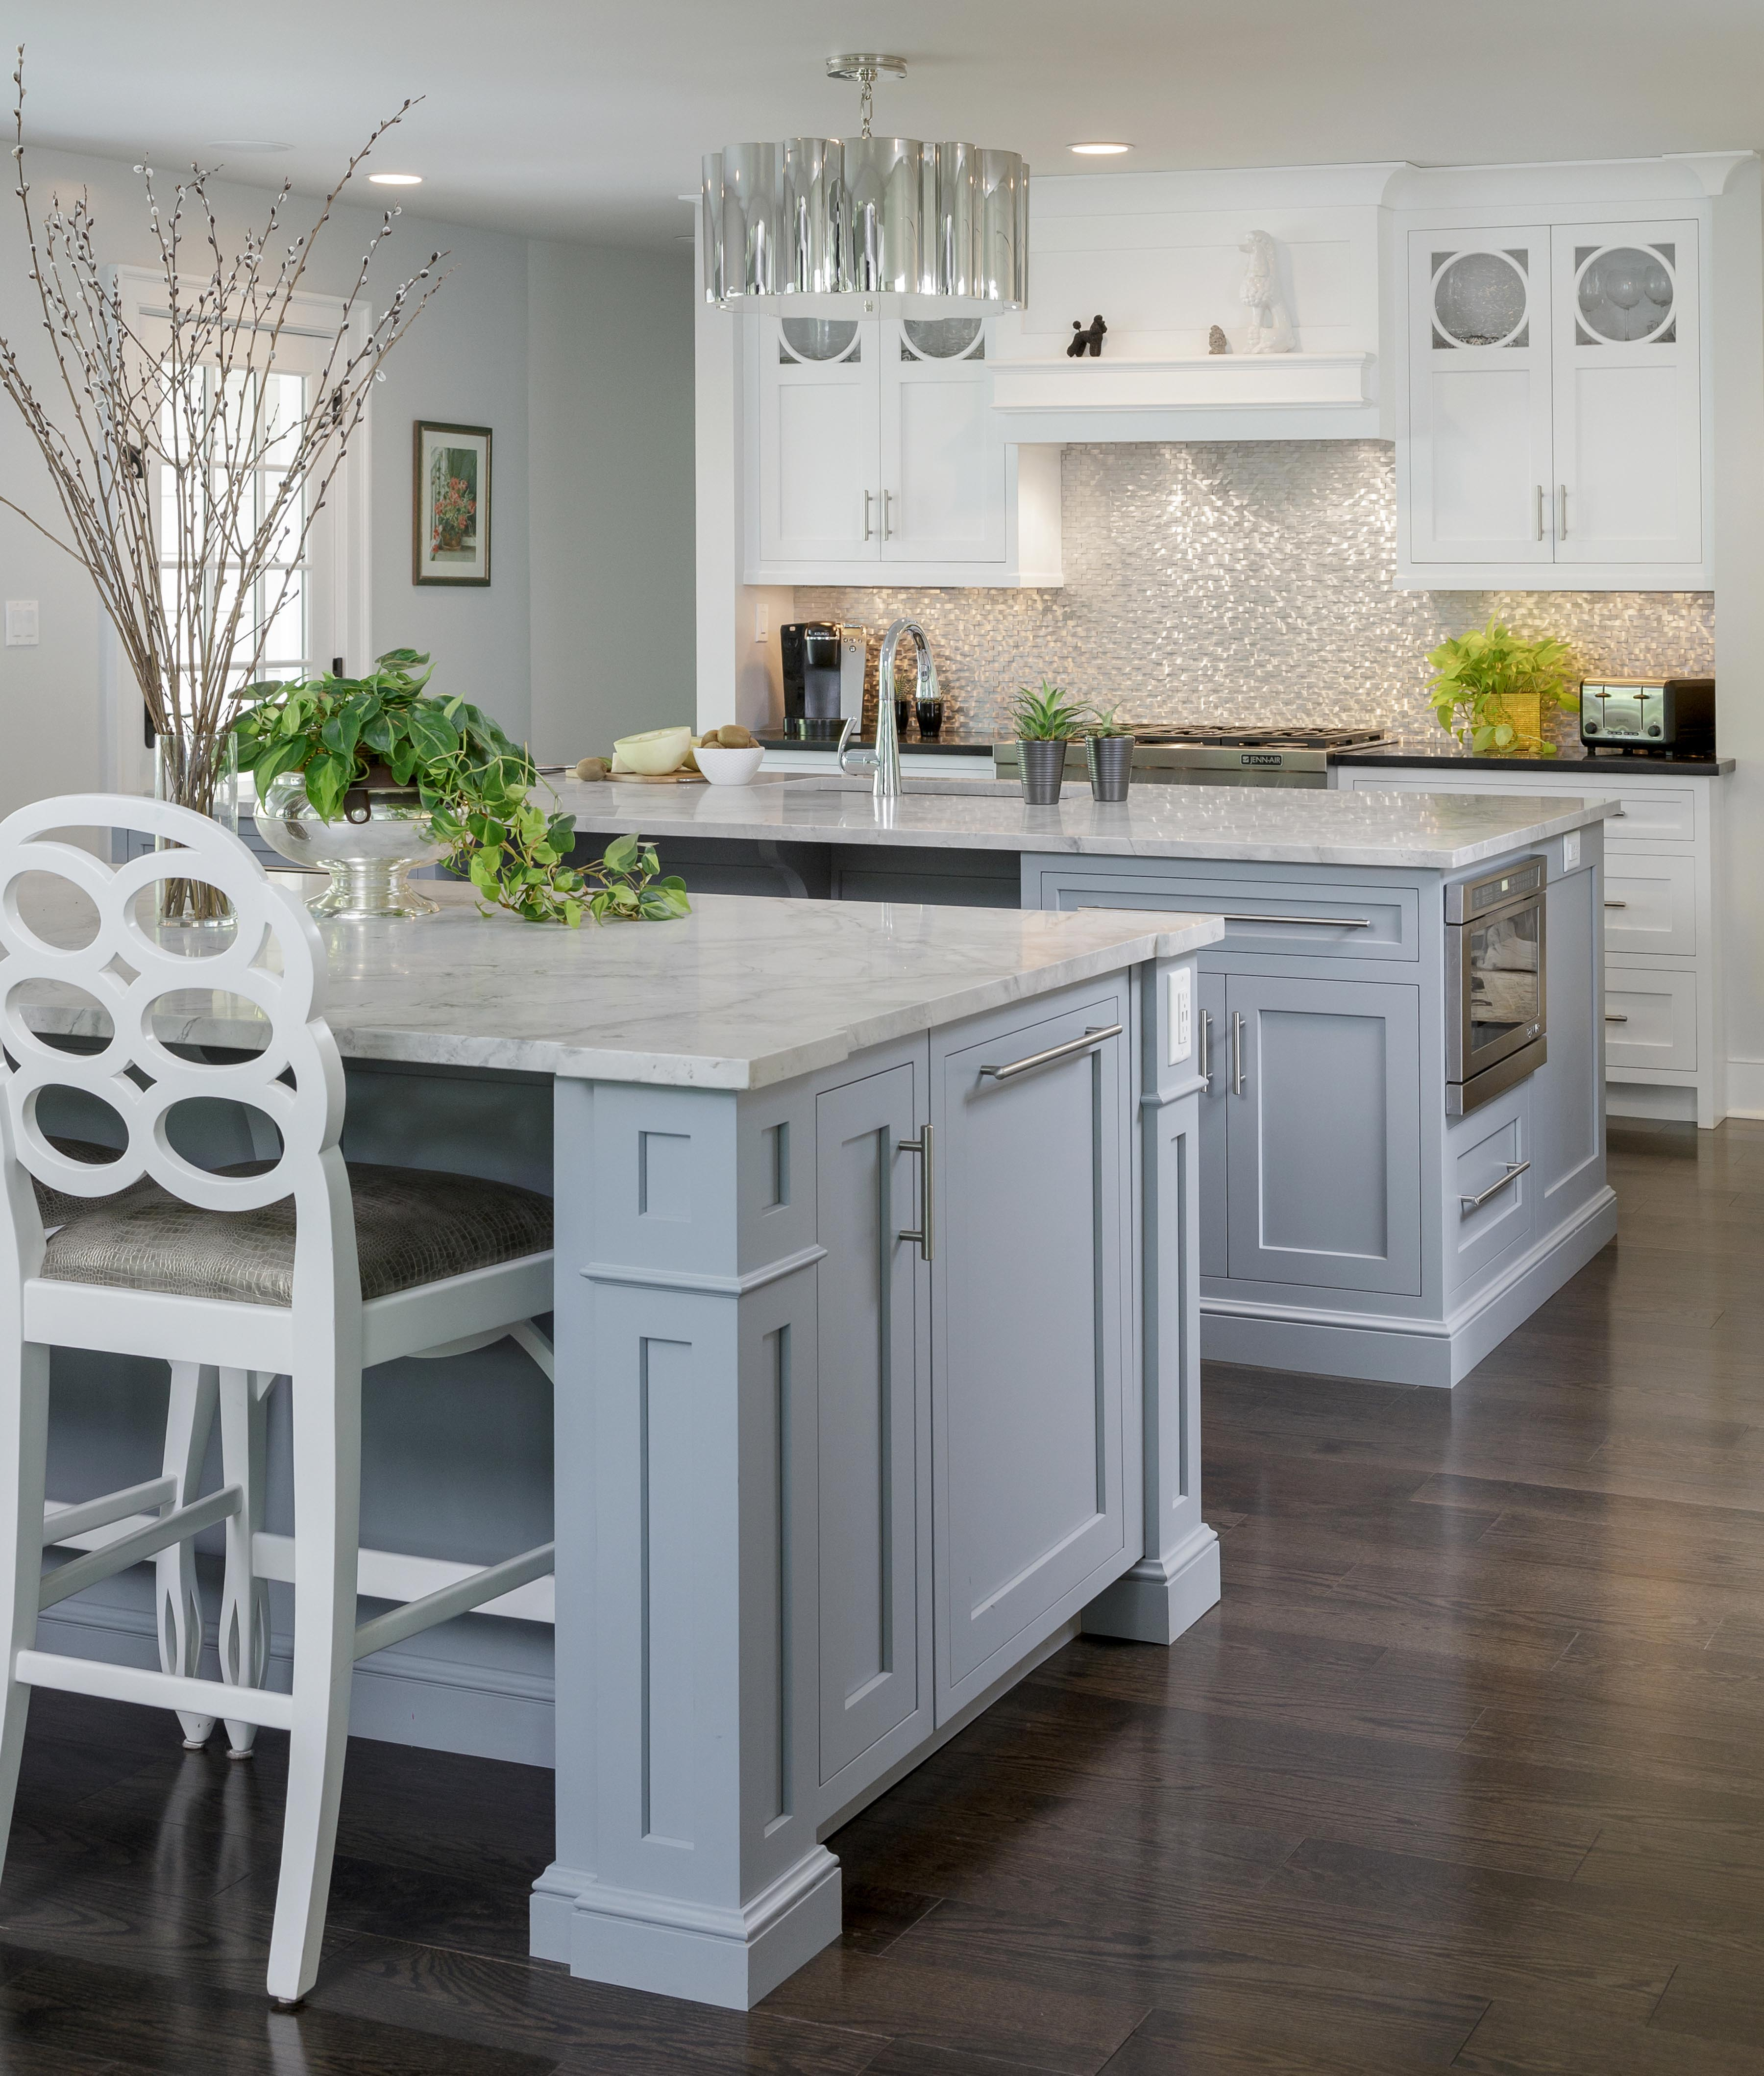 Design Kitchen Online Free: Upscale Kitchen Design In Maryland, Pennsylvania, Delaware